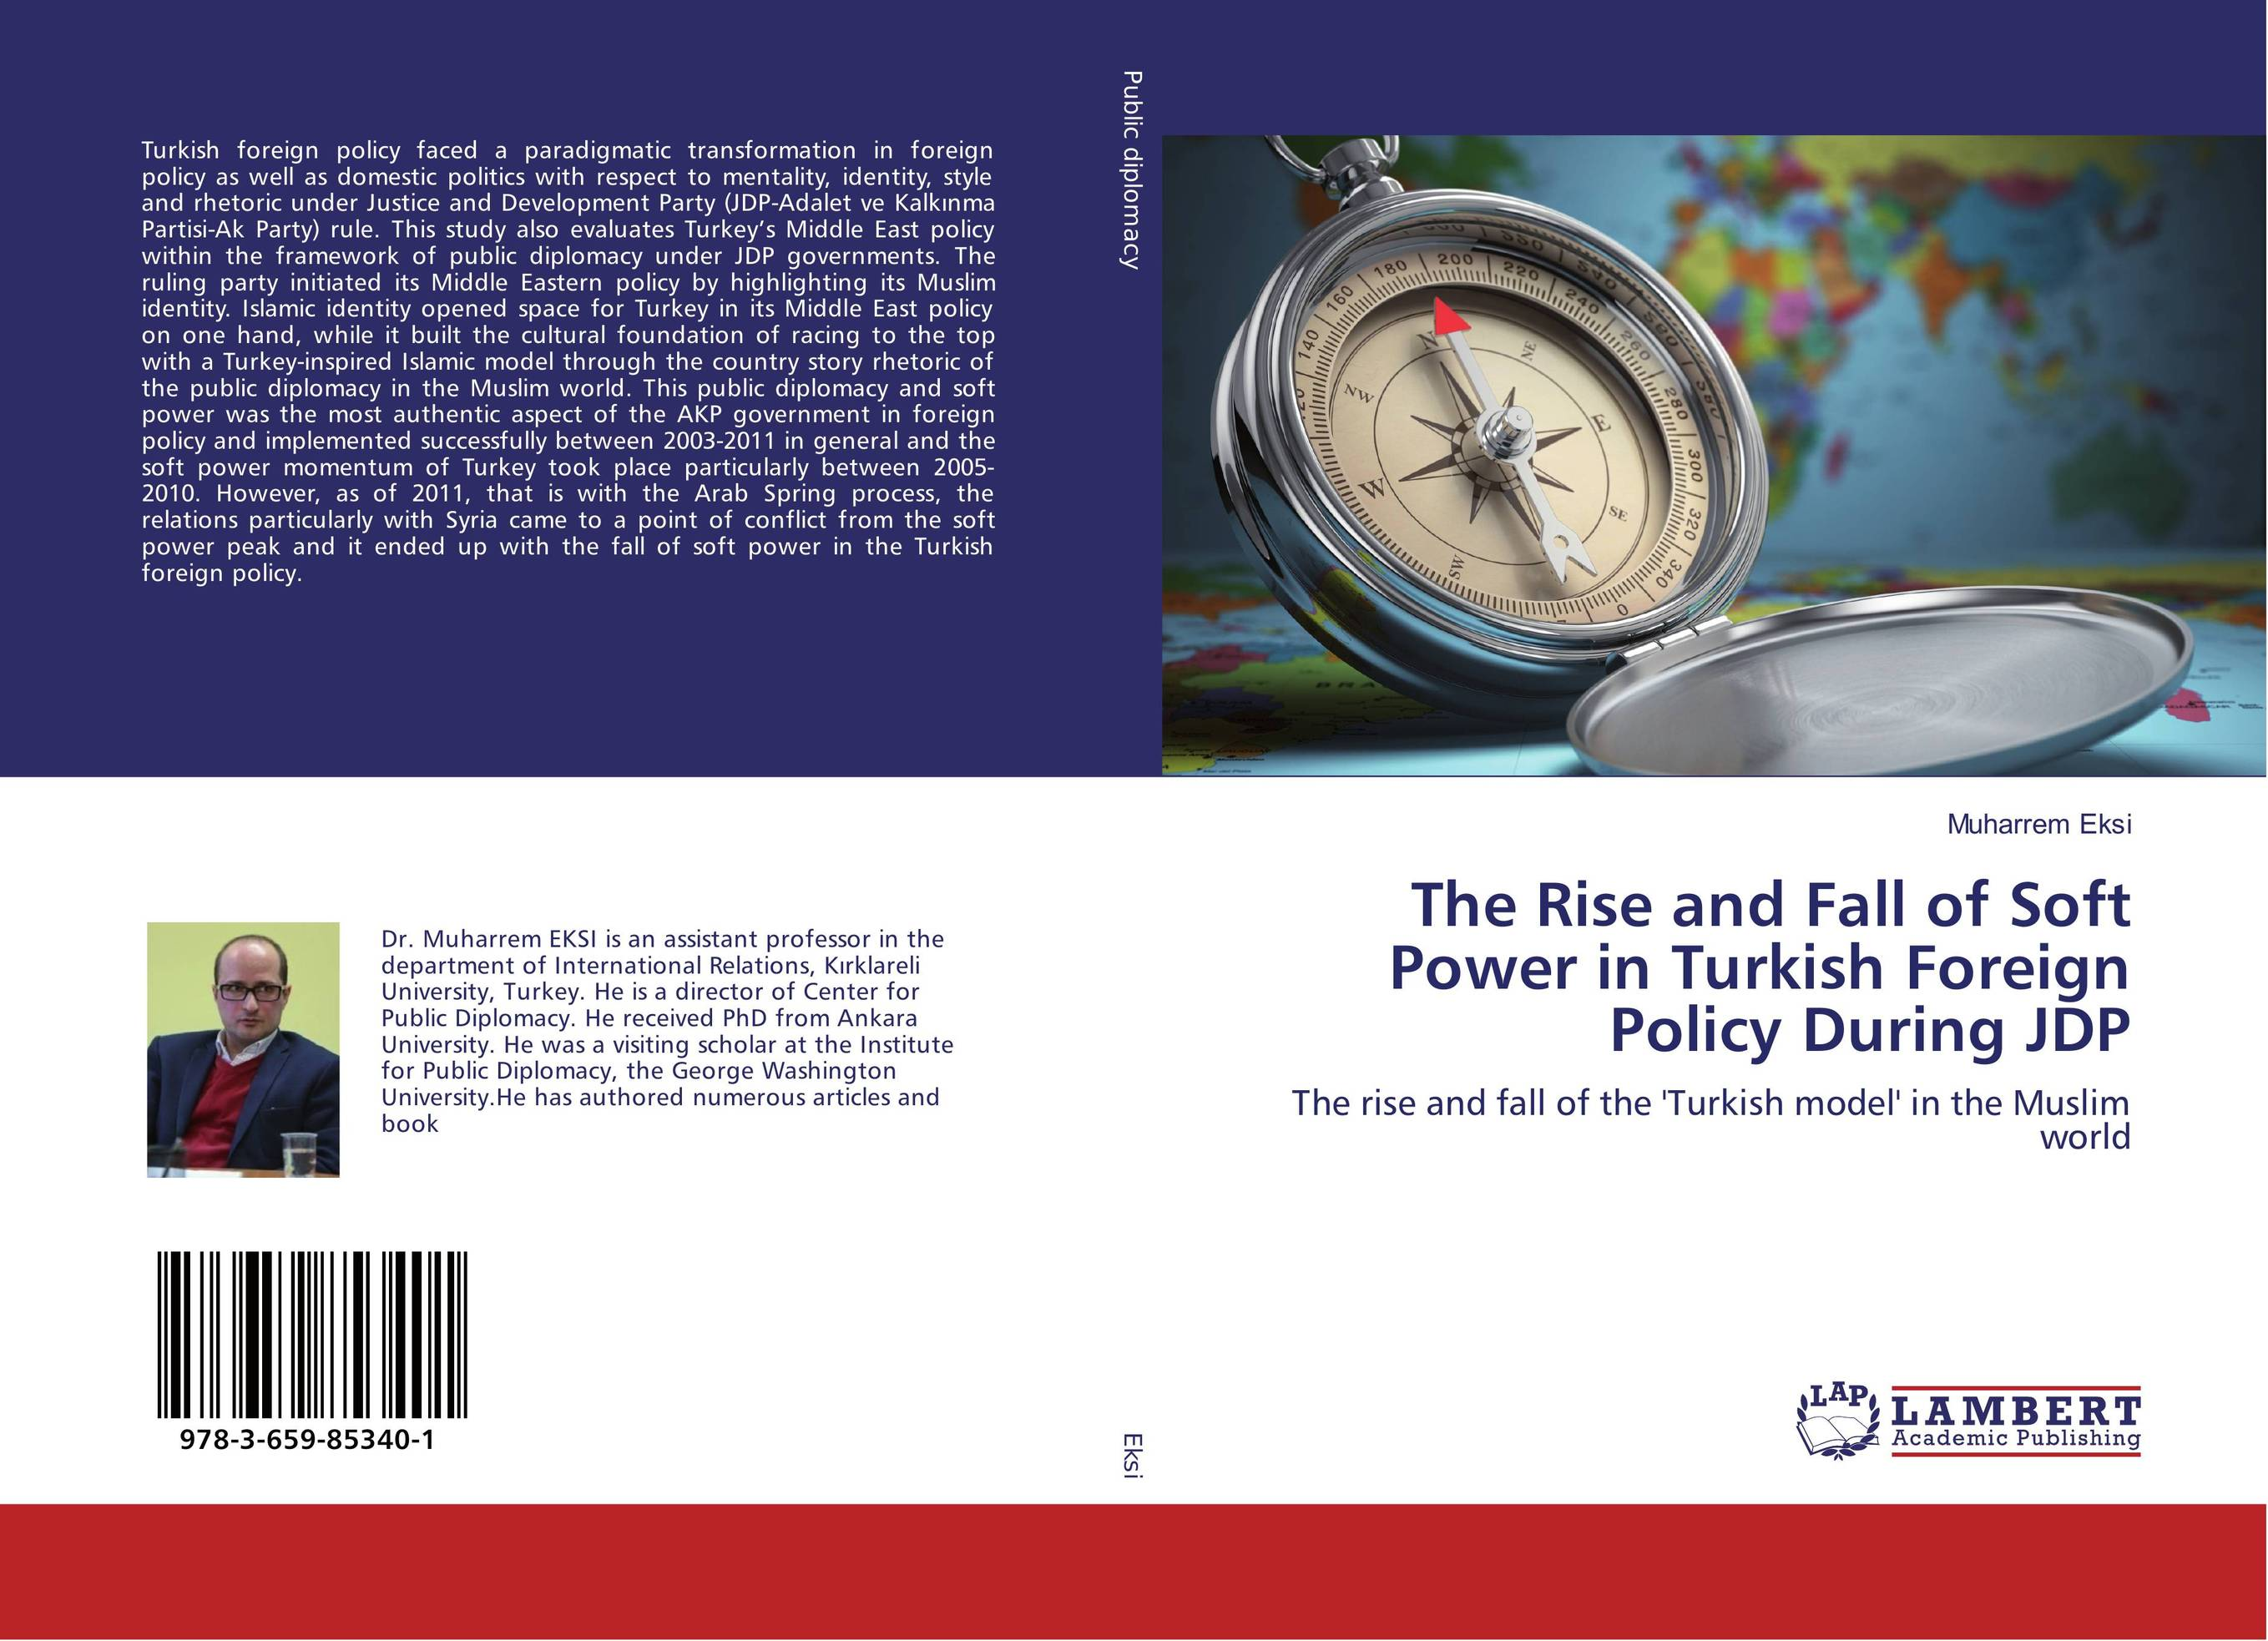 The Rise and Fall of Soft Power in Turkish Foreign Policy During JDP купить